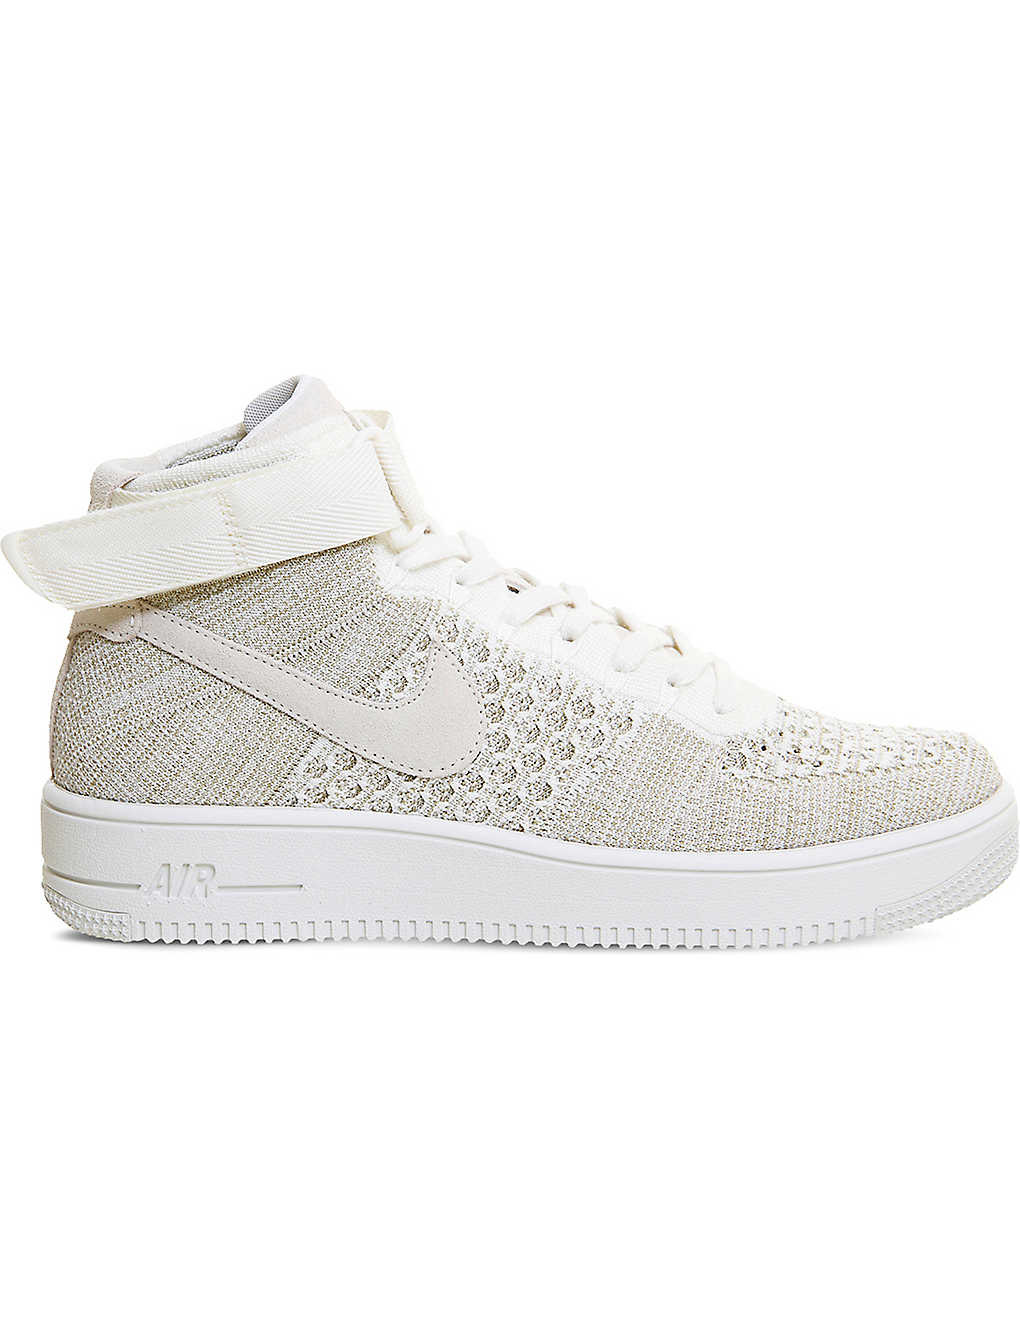 a50c048692887 NIKE - Air Force 1 flyknit mid-top trainers